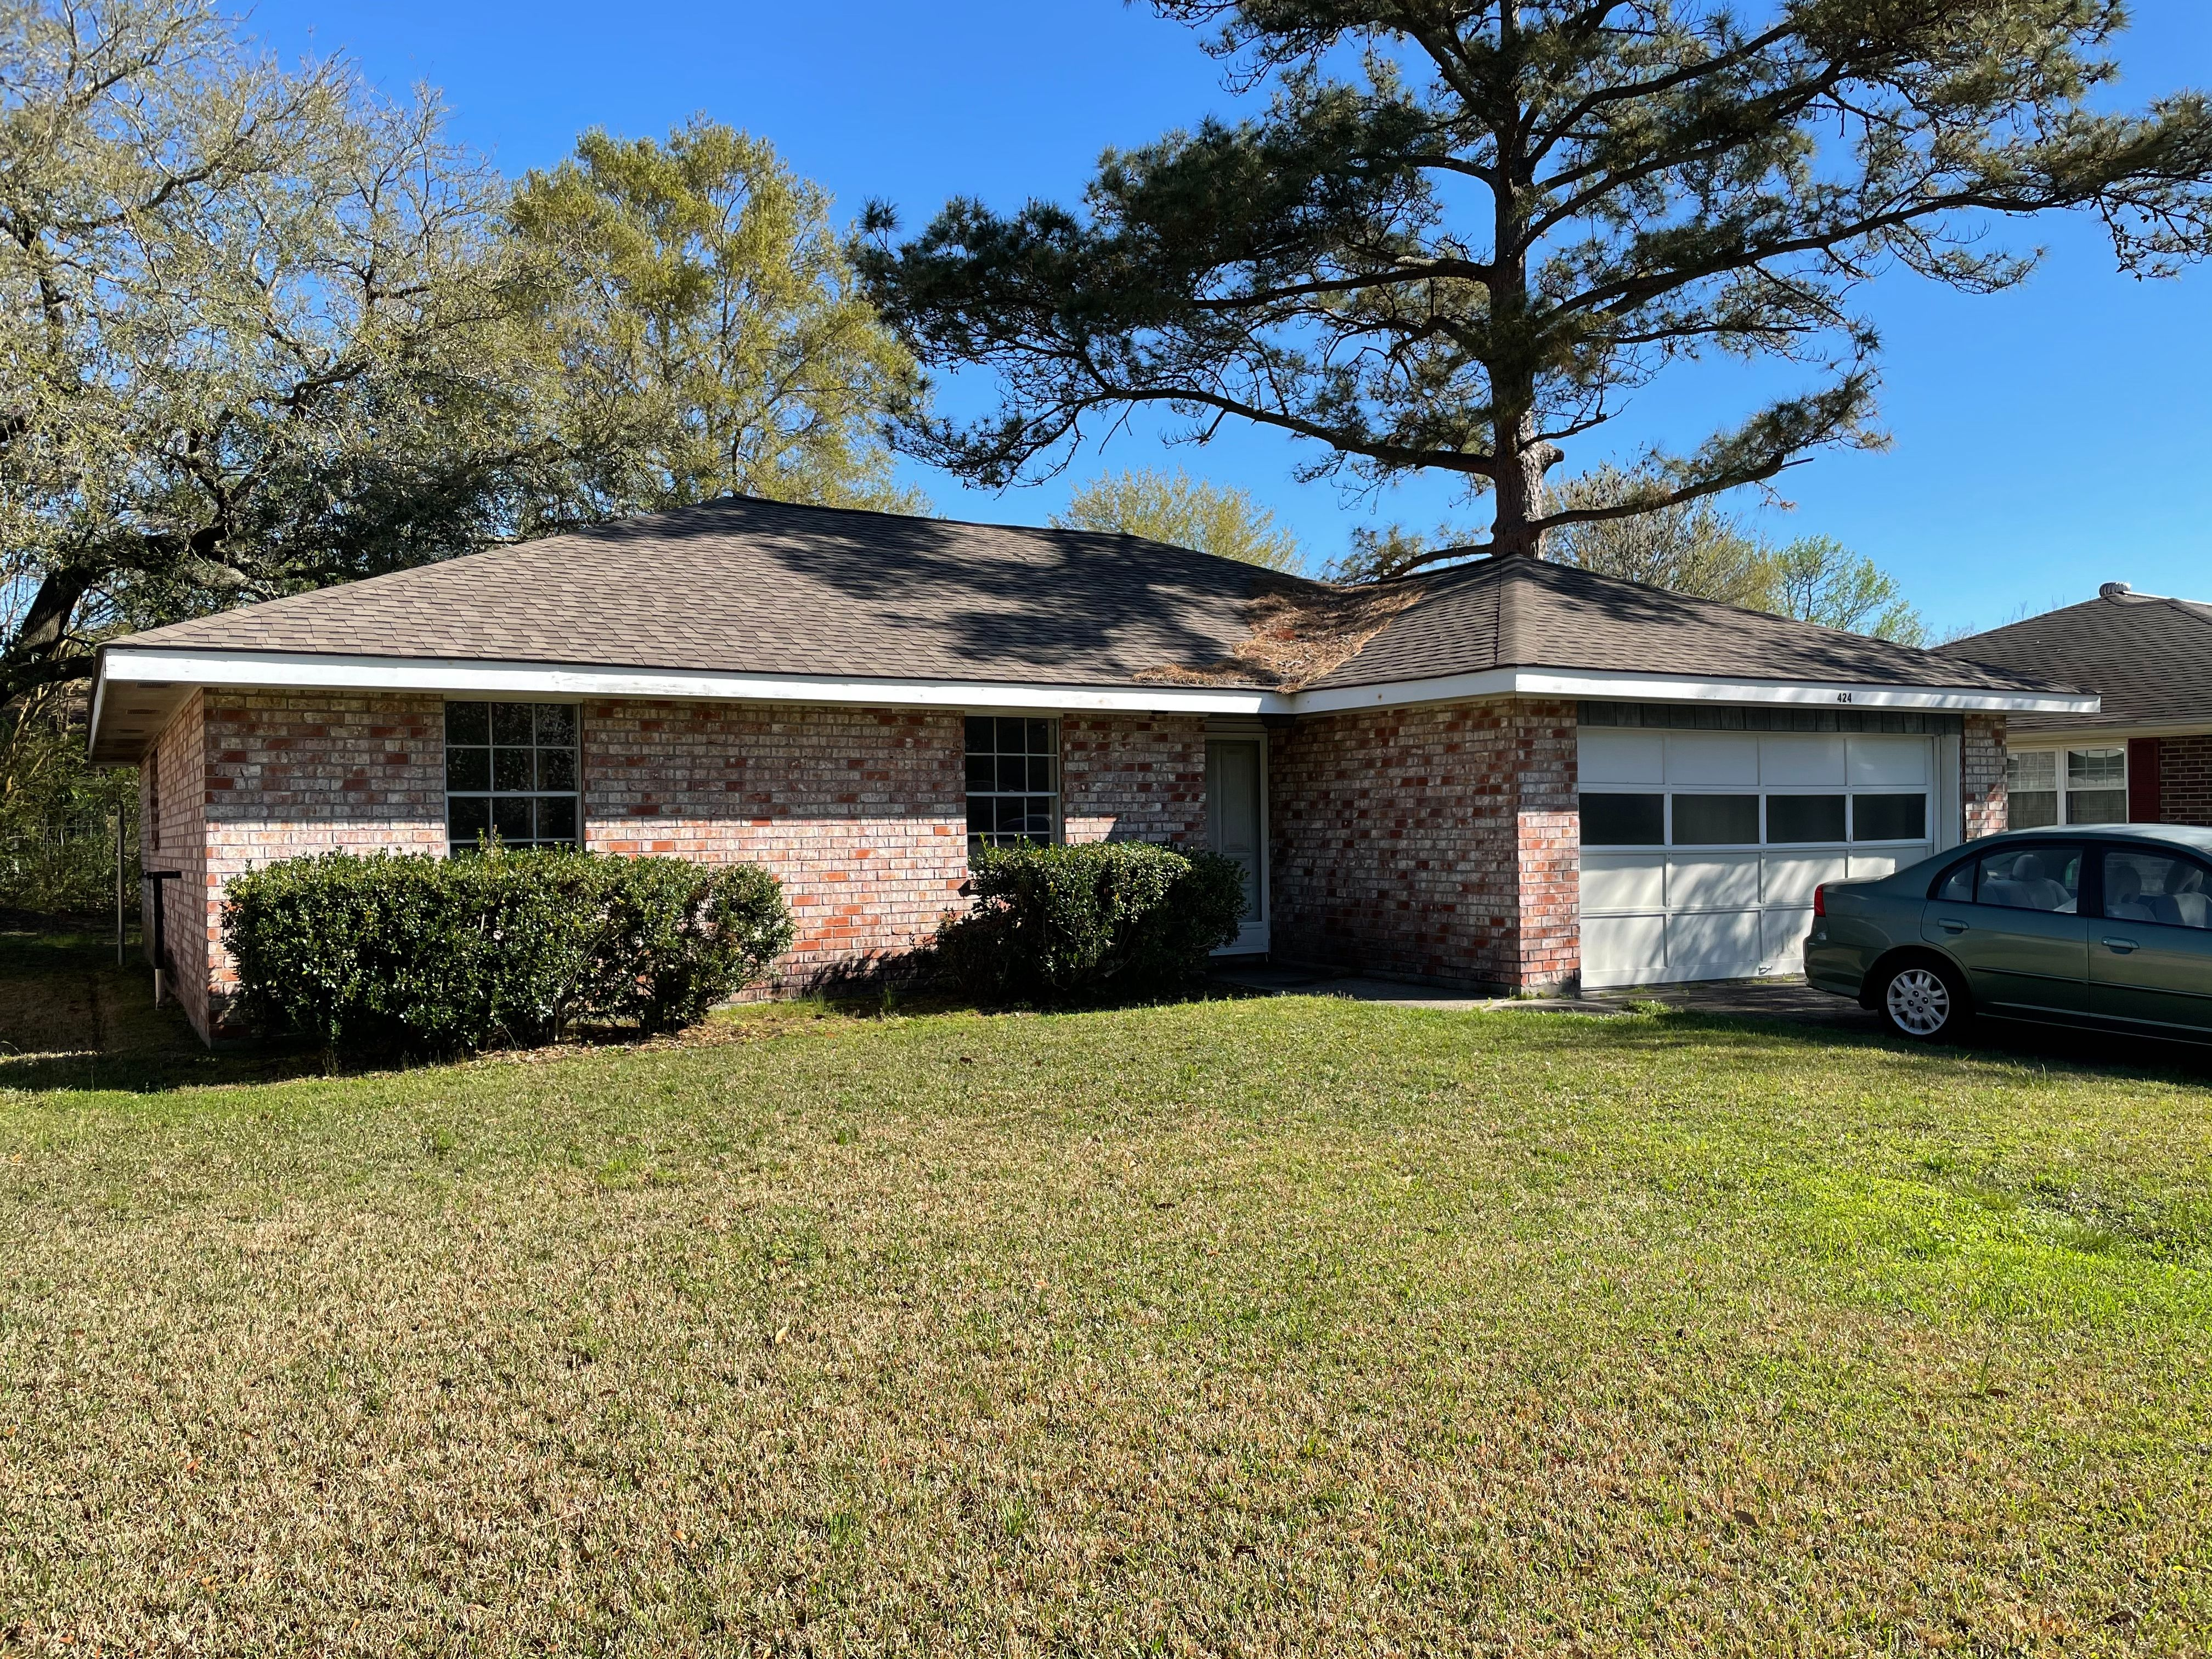 424 Pine Shadows Dr, Slidell, LA